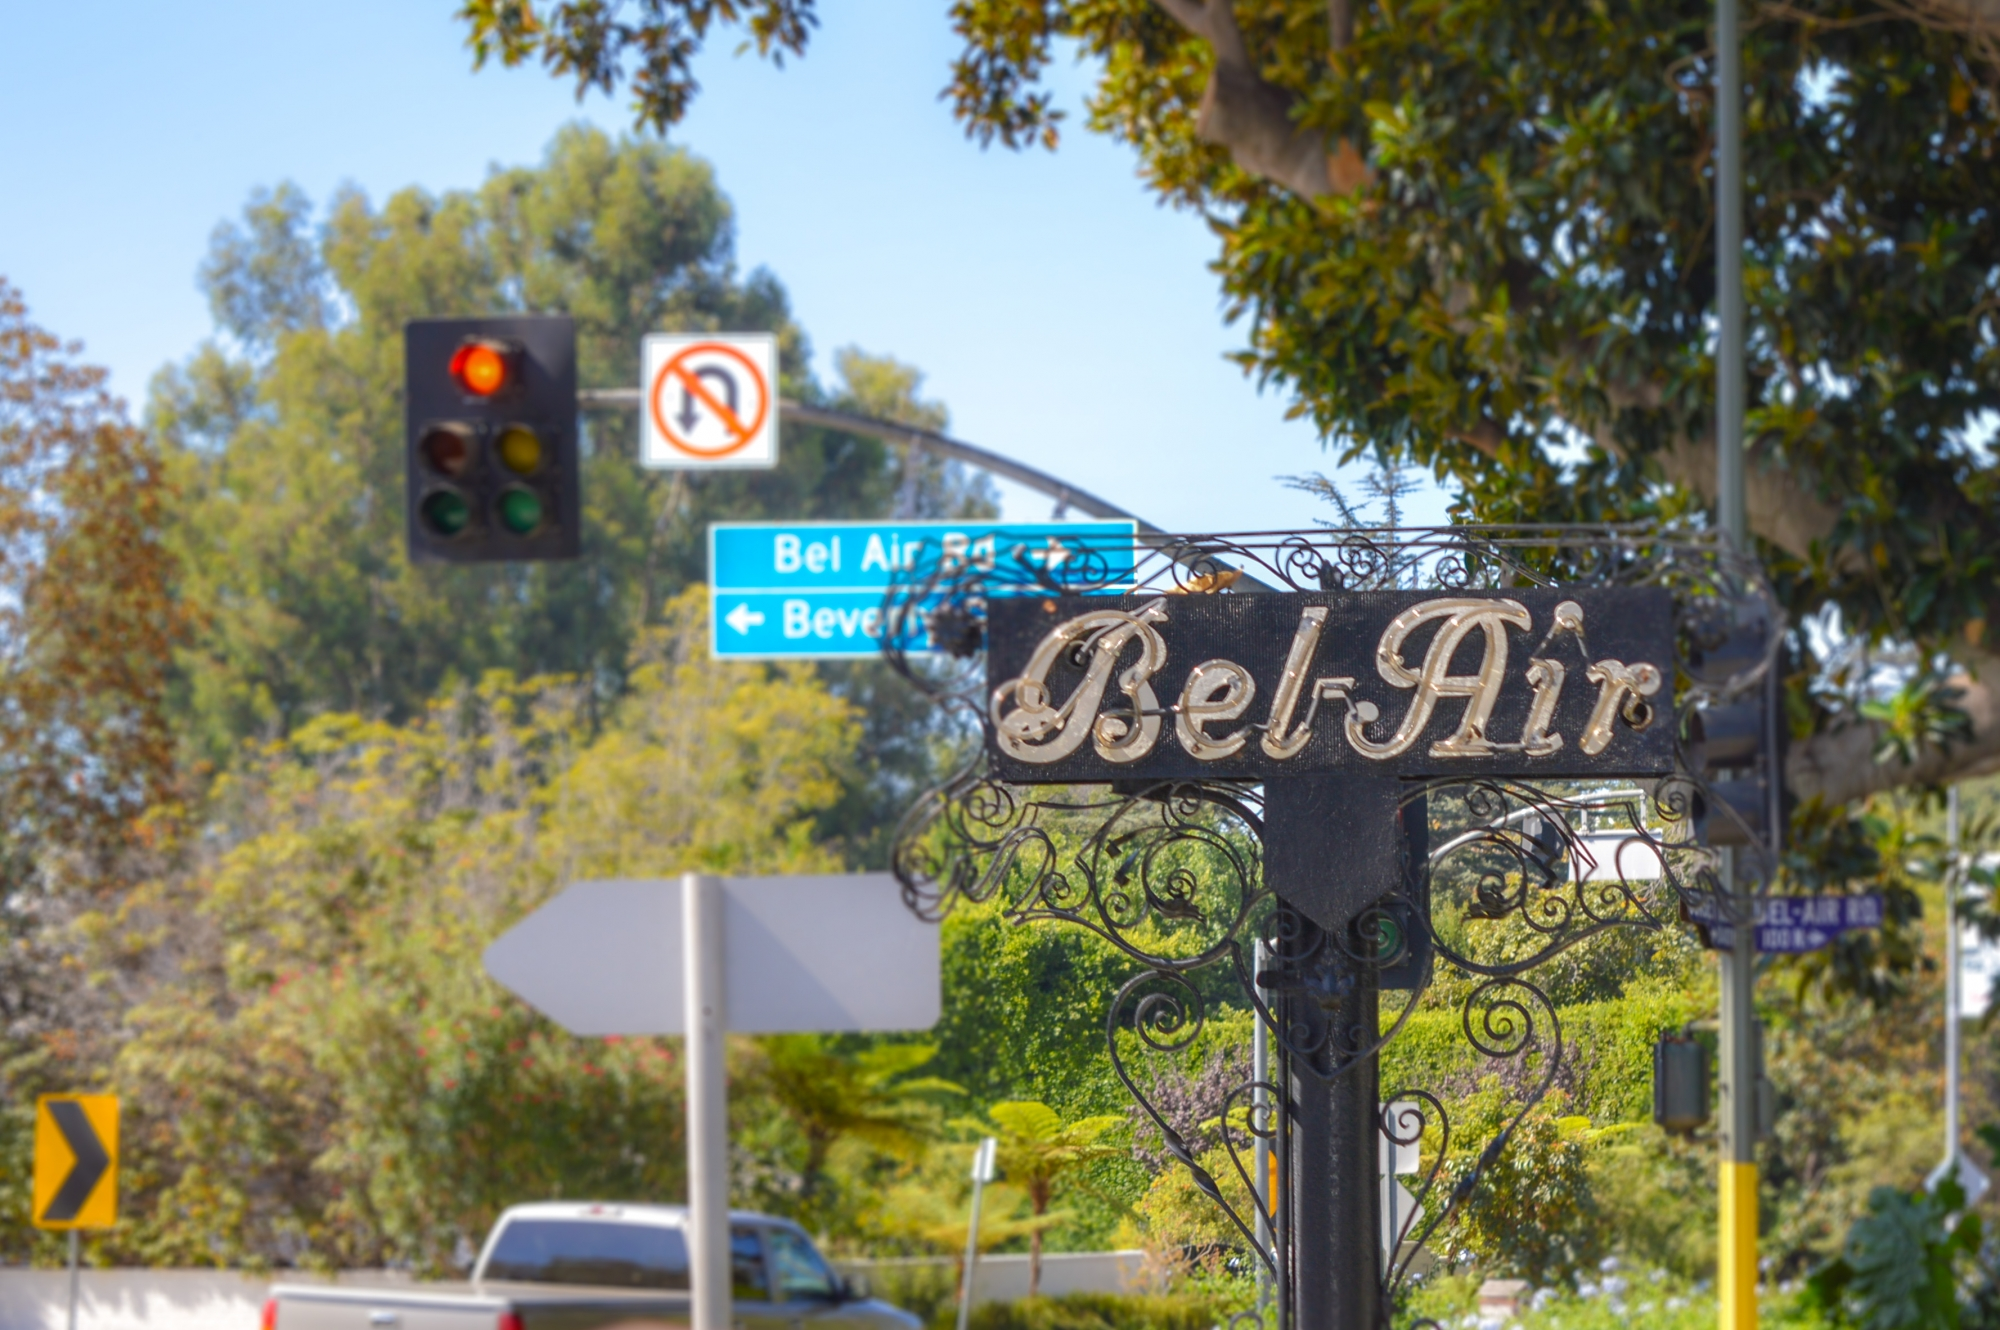 Bel Air Sign, Los Angeles